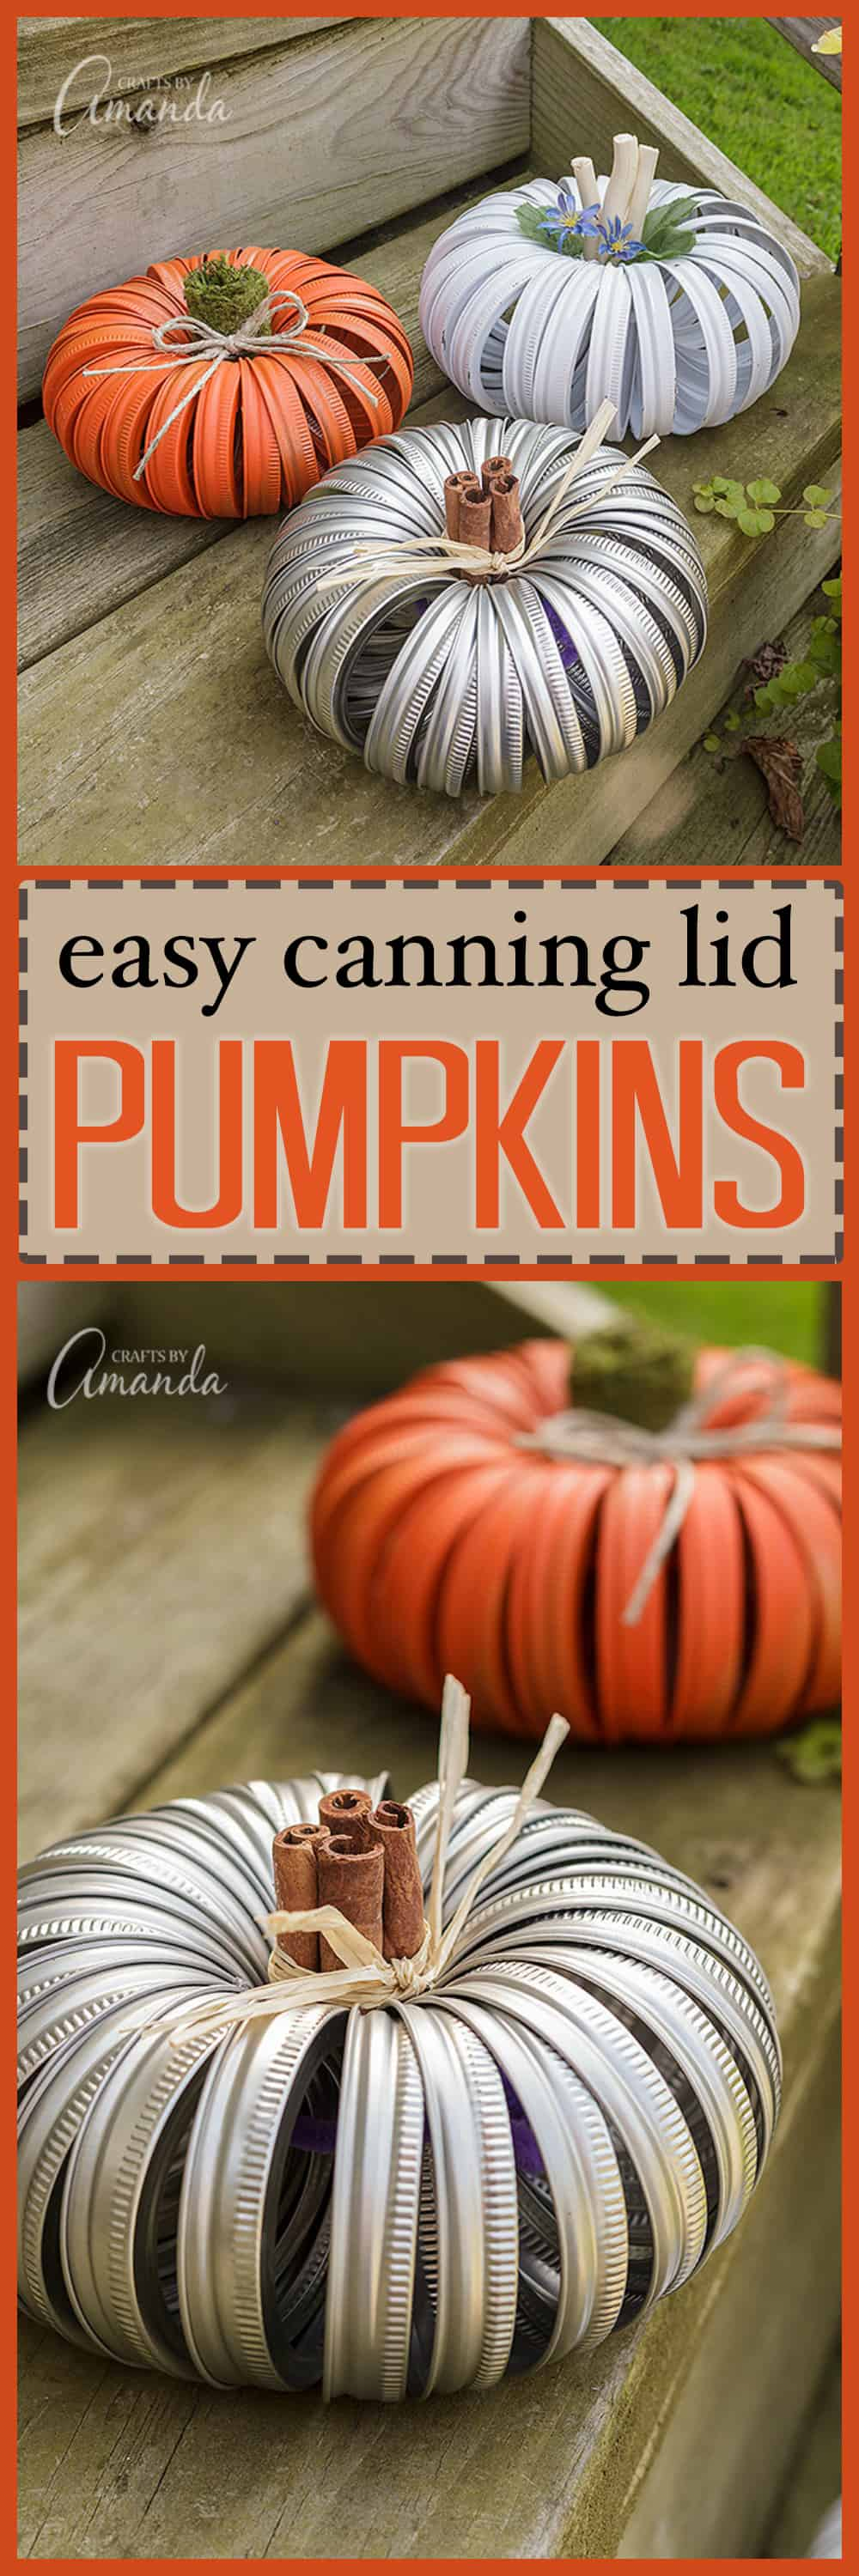 Surely you've seen the mason jar lid pumpkins on the web the last few years. Making a pumpkin out of canning lids is easy and there are several variations. #canninglidpumpkins #halloween #halloweencrafts #fallcrafts #thanksgivingcrafts #masonjar #masonjarcrafts